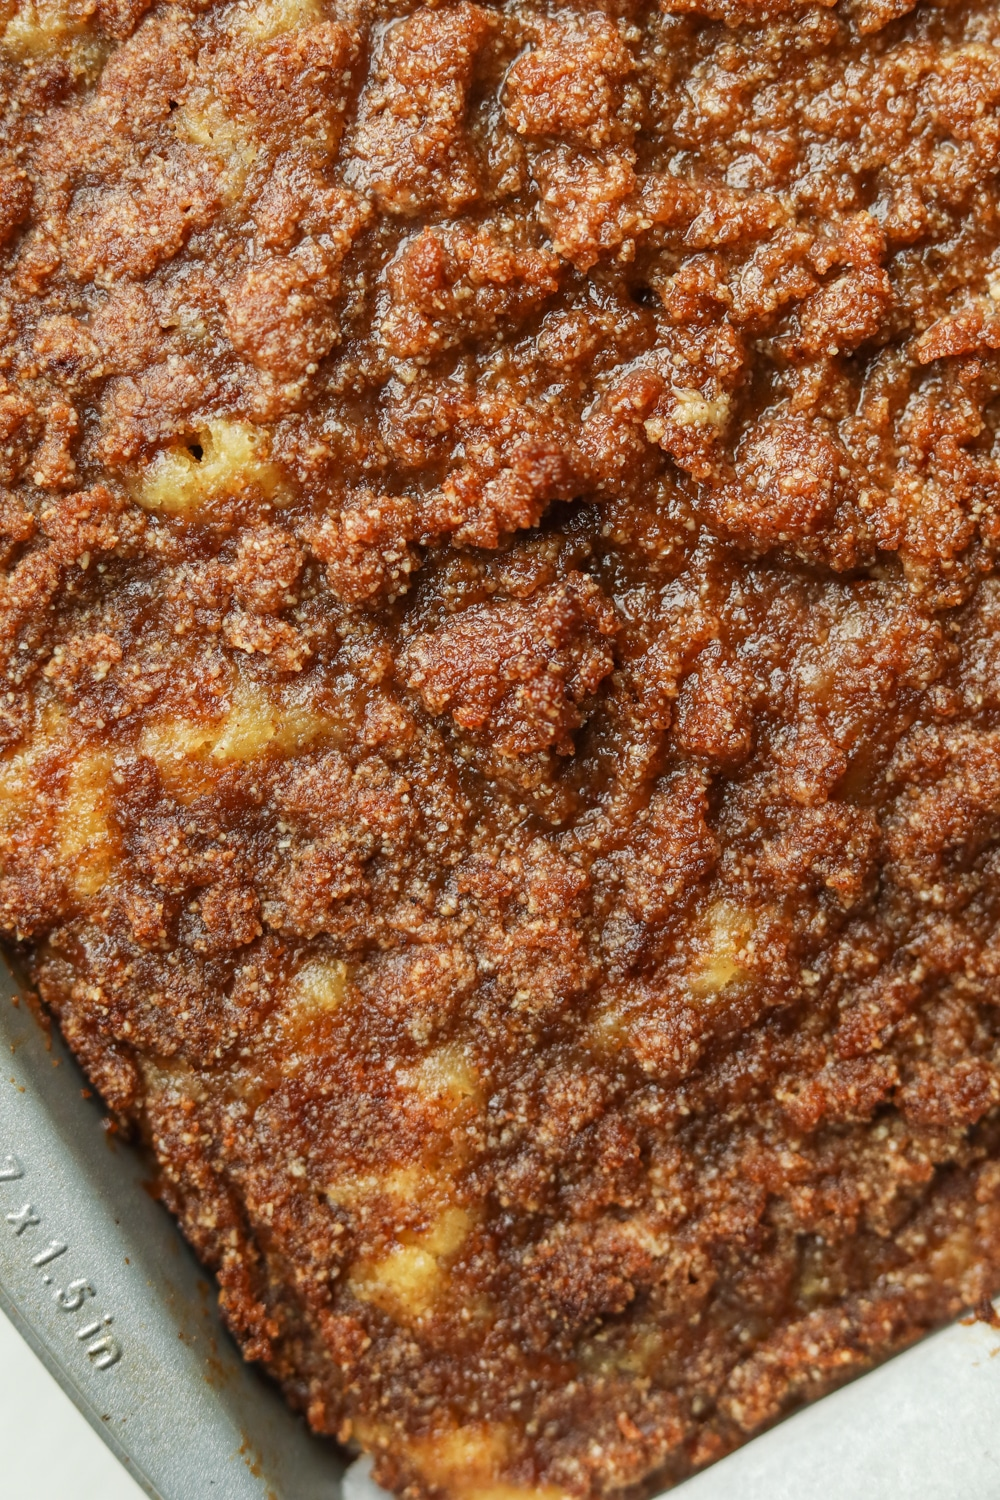 A cake tray filled with cake that has a cinnamon crumble topping on it.